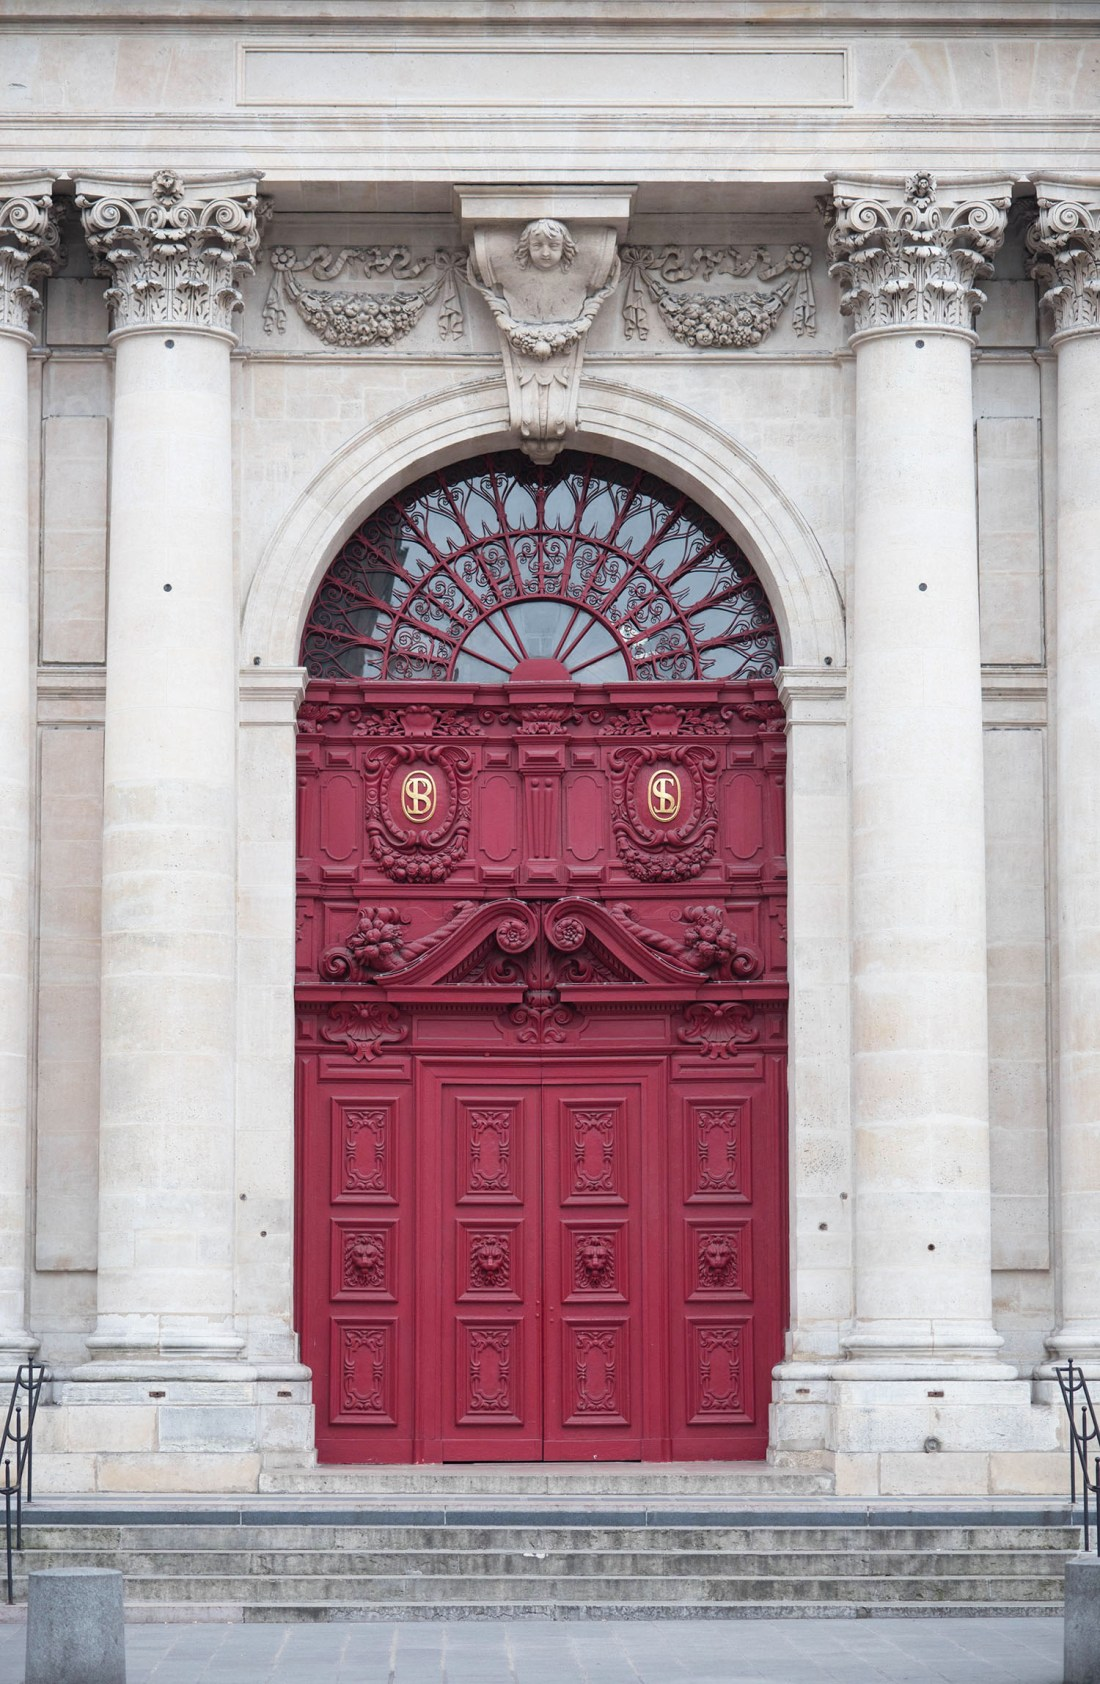 The ornate red door of a cathedral on rue de Rivoli in Paris, as photographed by Winnipeg travel blogger Cee Fardoe of Coco & Vera